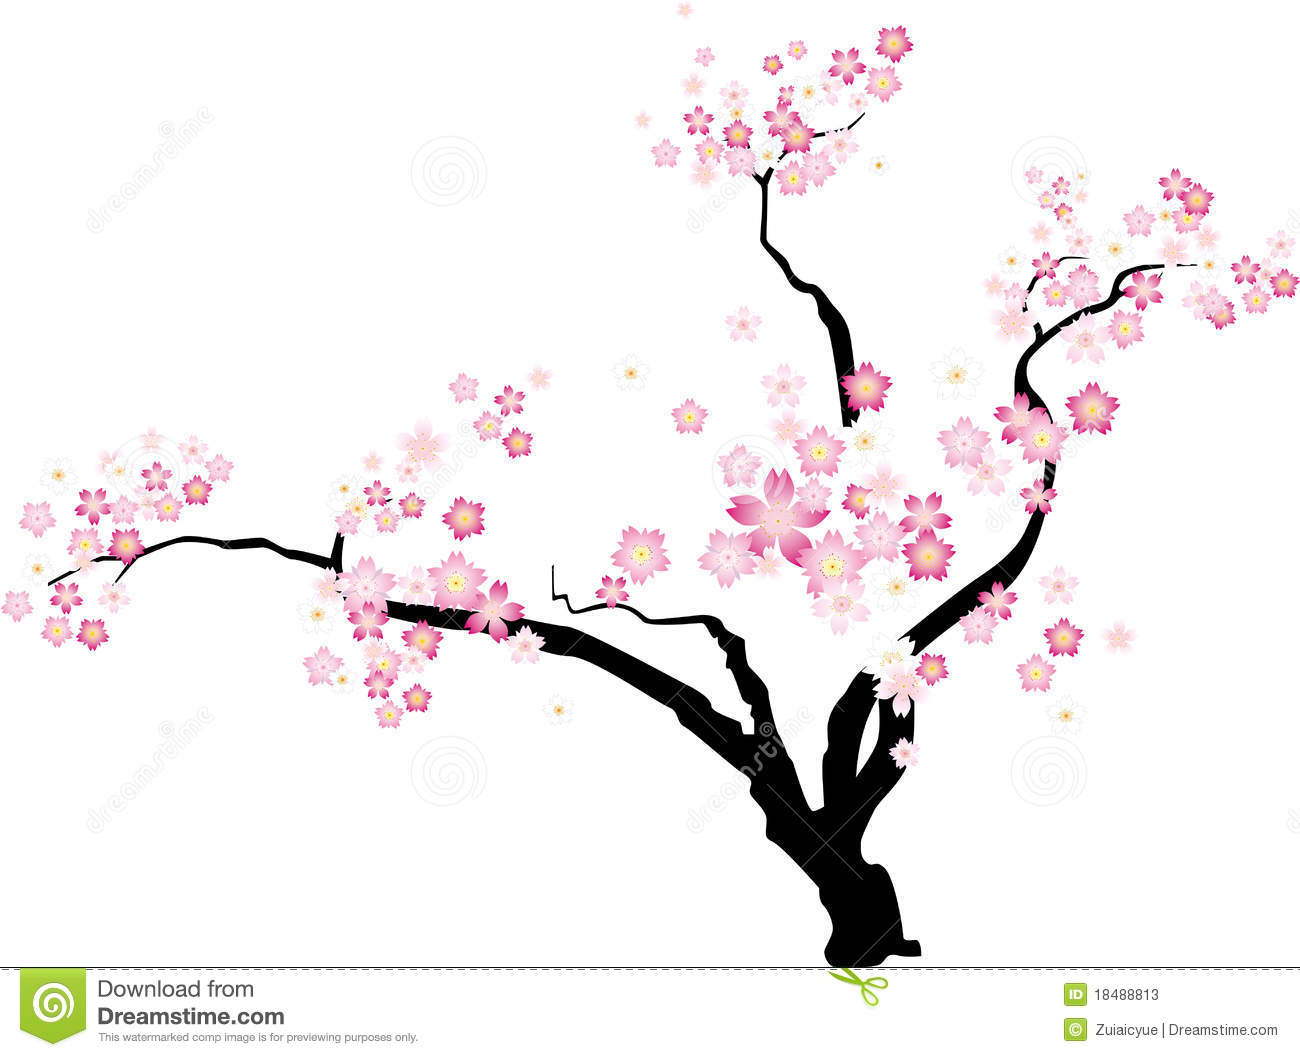 Cherry blossom stock vector. Image of shape, pink, pattern - 18488813